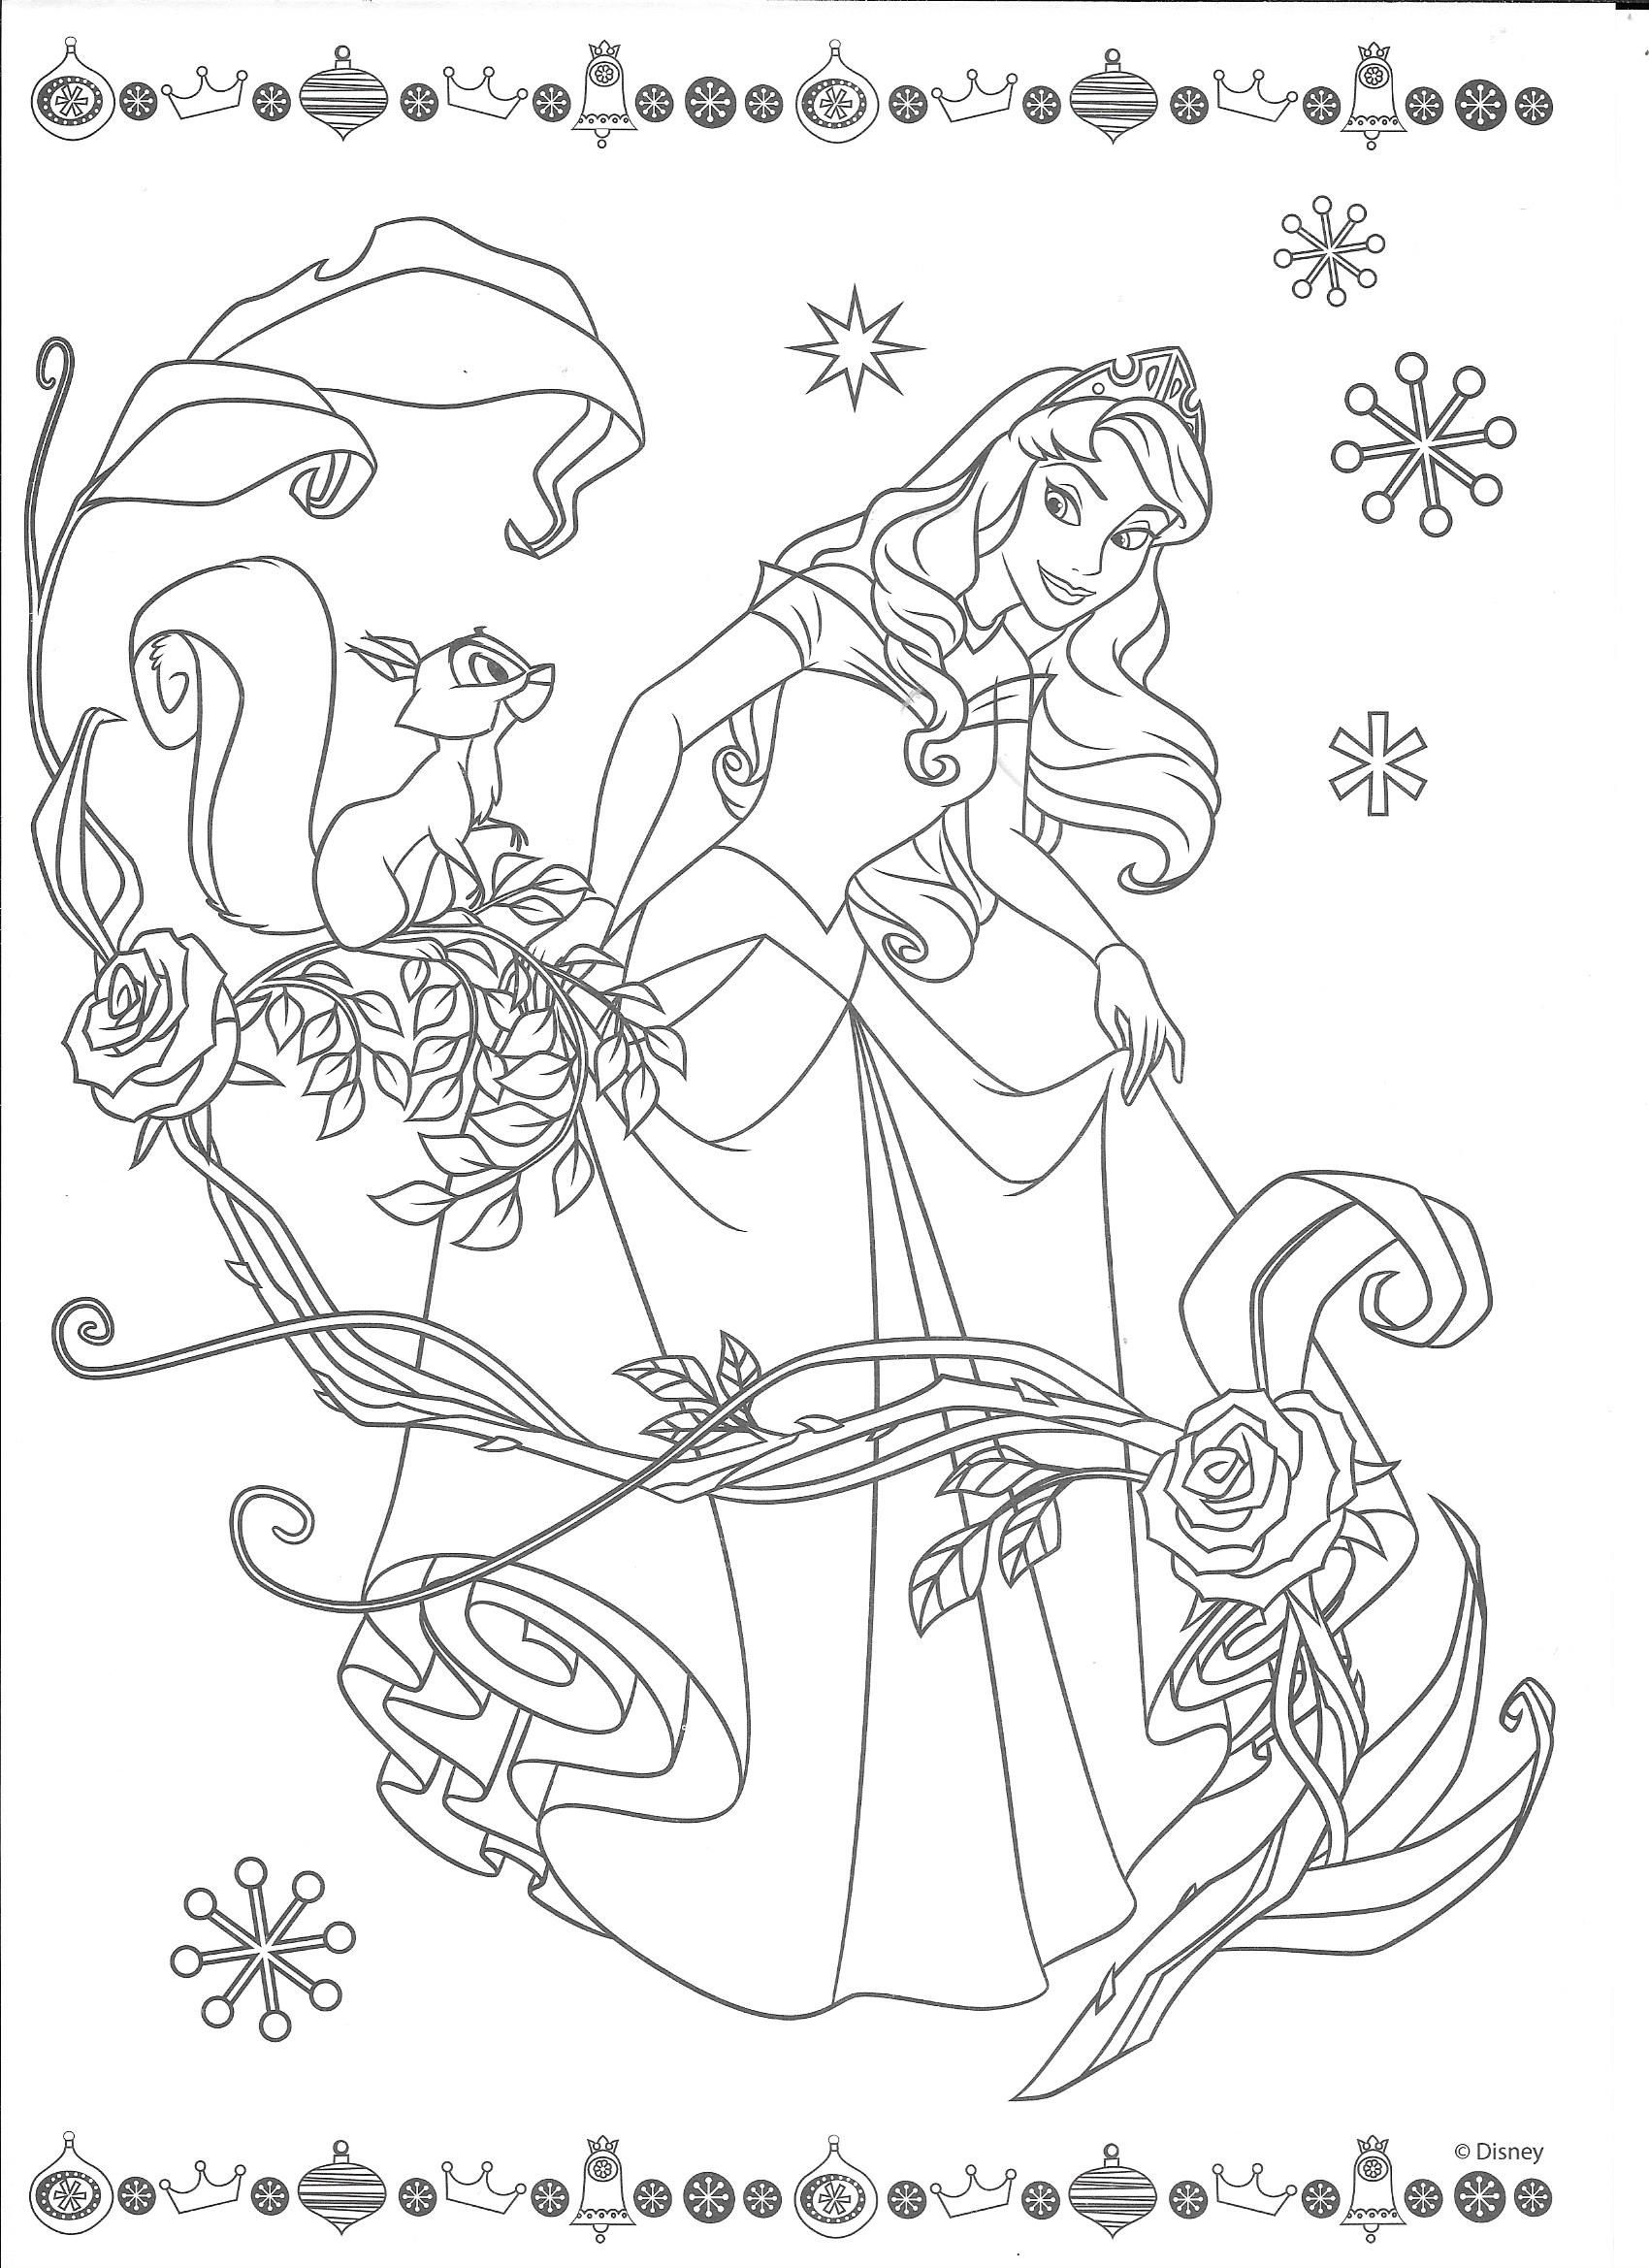 Pin by Melissa Chase on Princess  Disney coloring pages, Disney